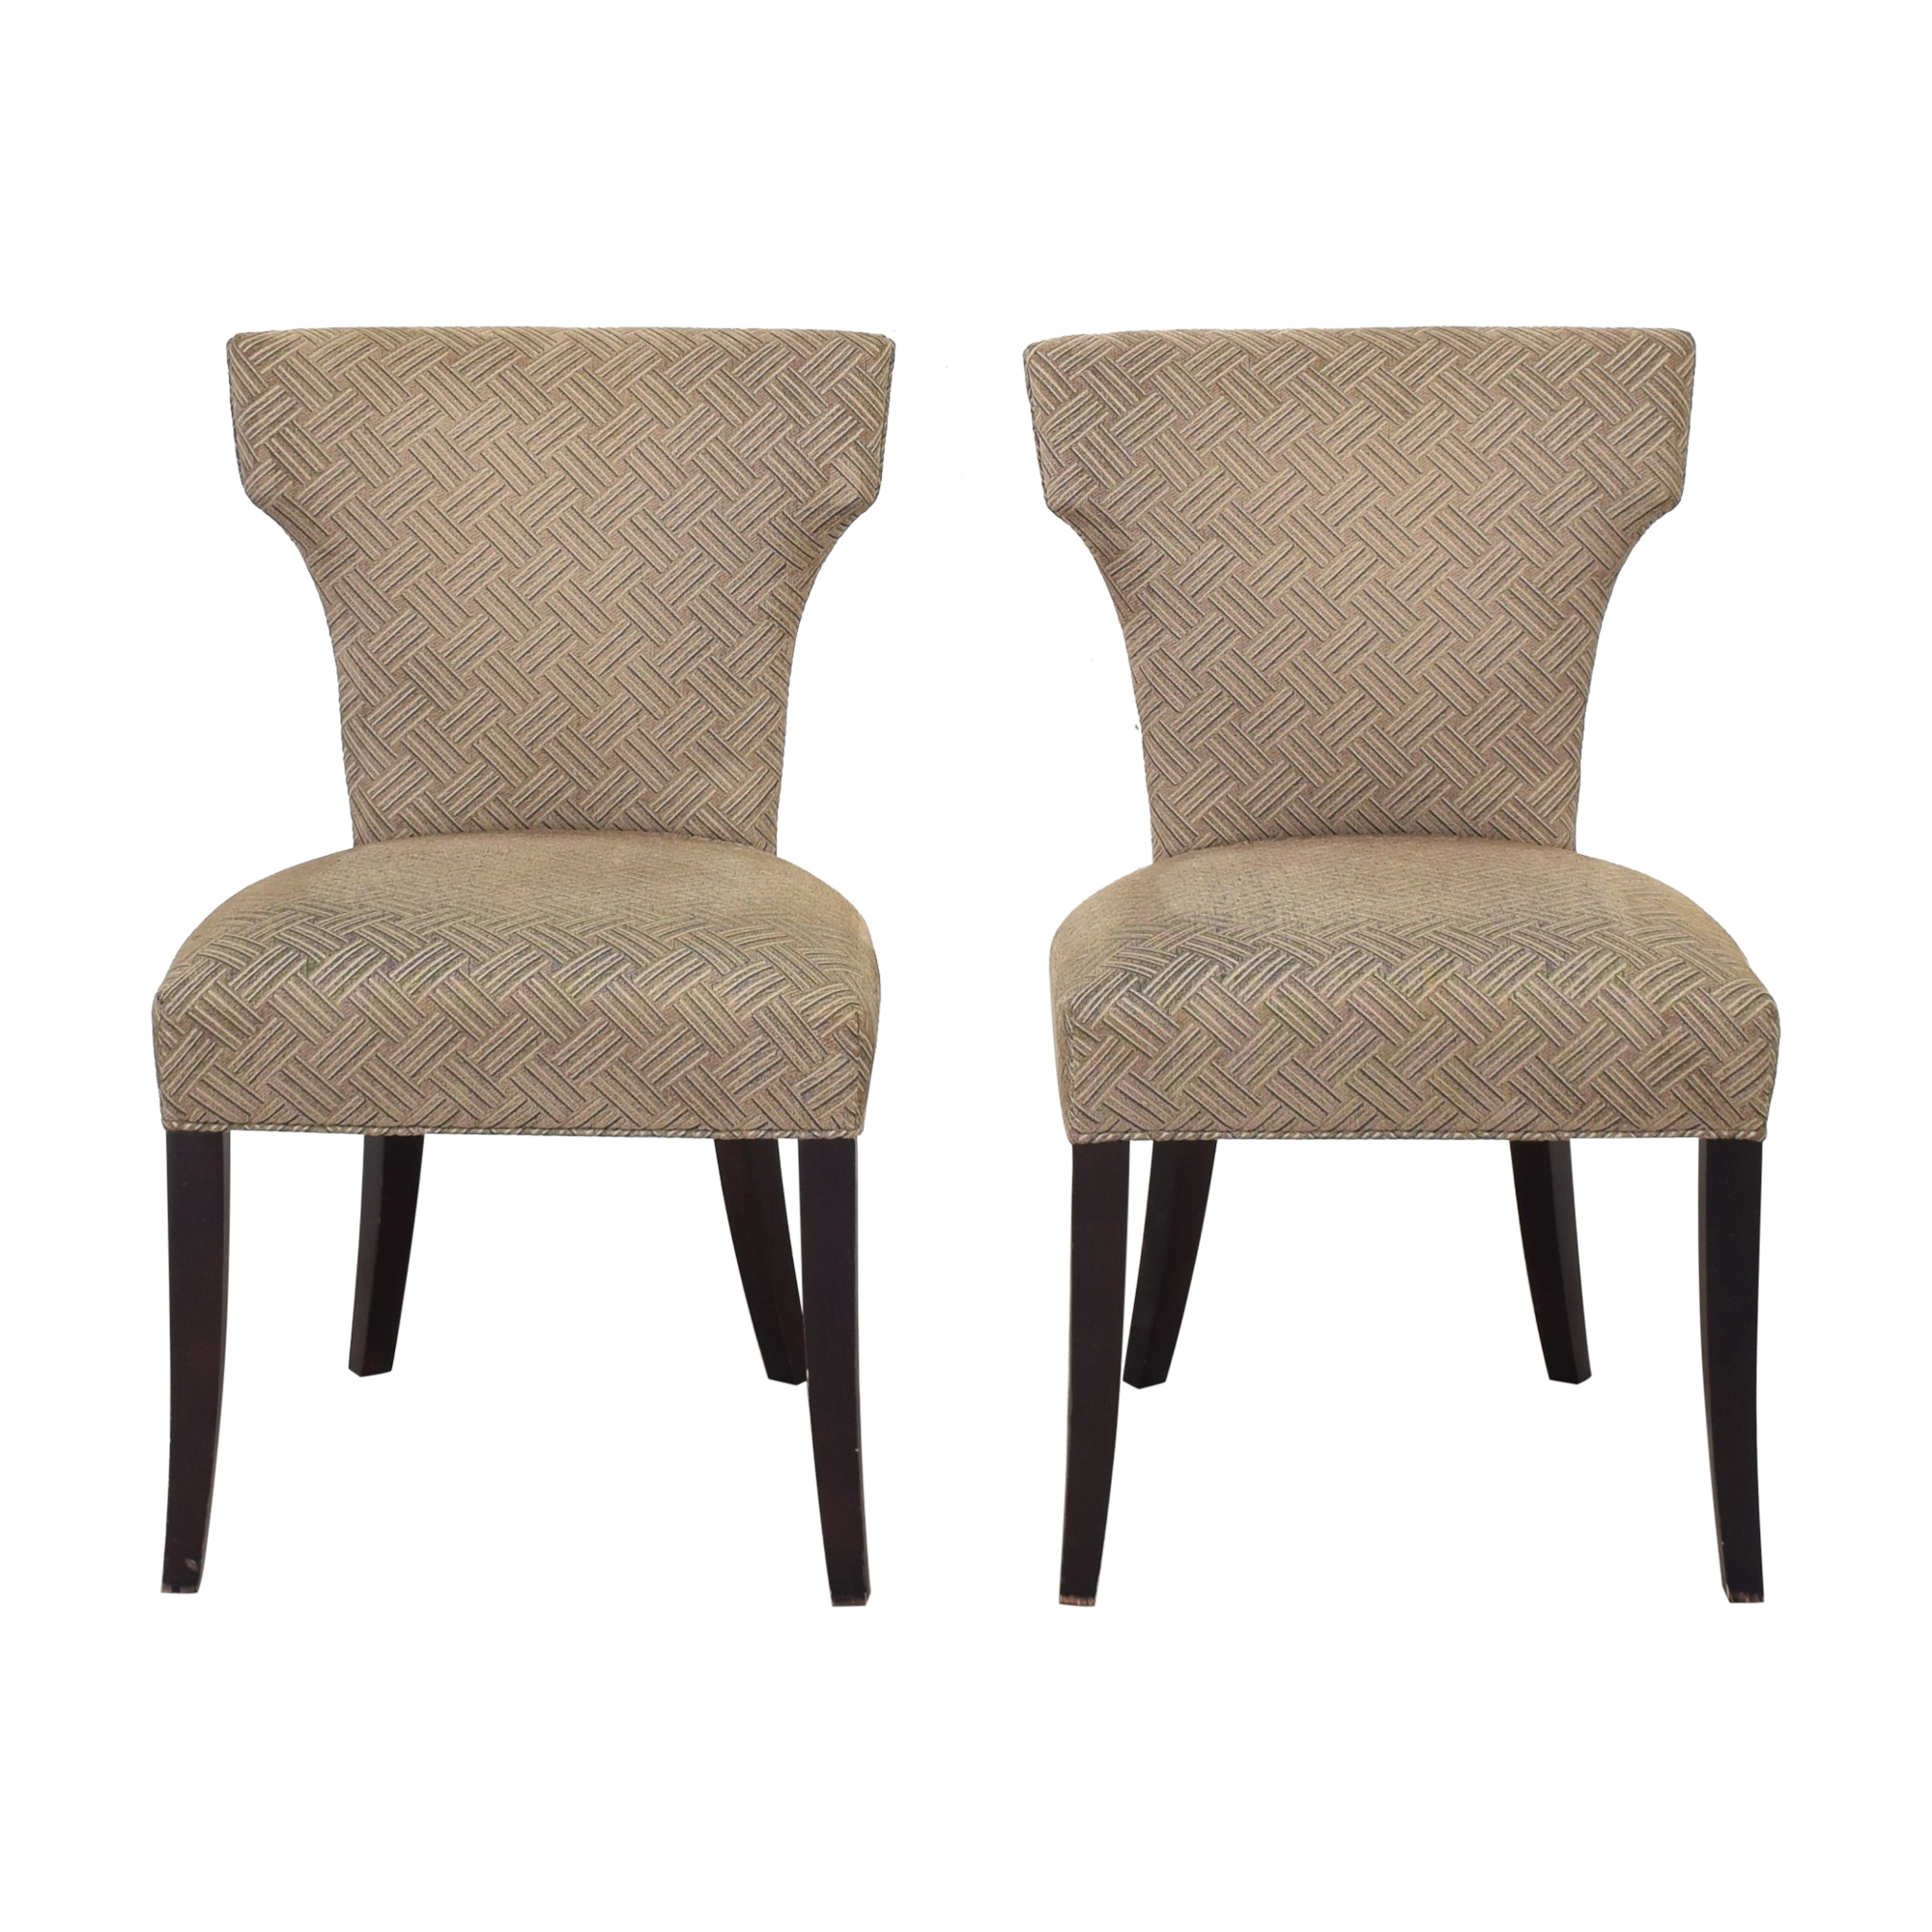 Crate & Barrel Crate & Barrel Sasha Upholstered Dining Chairs nj